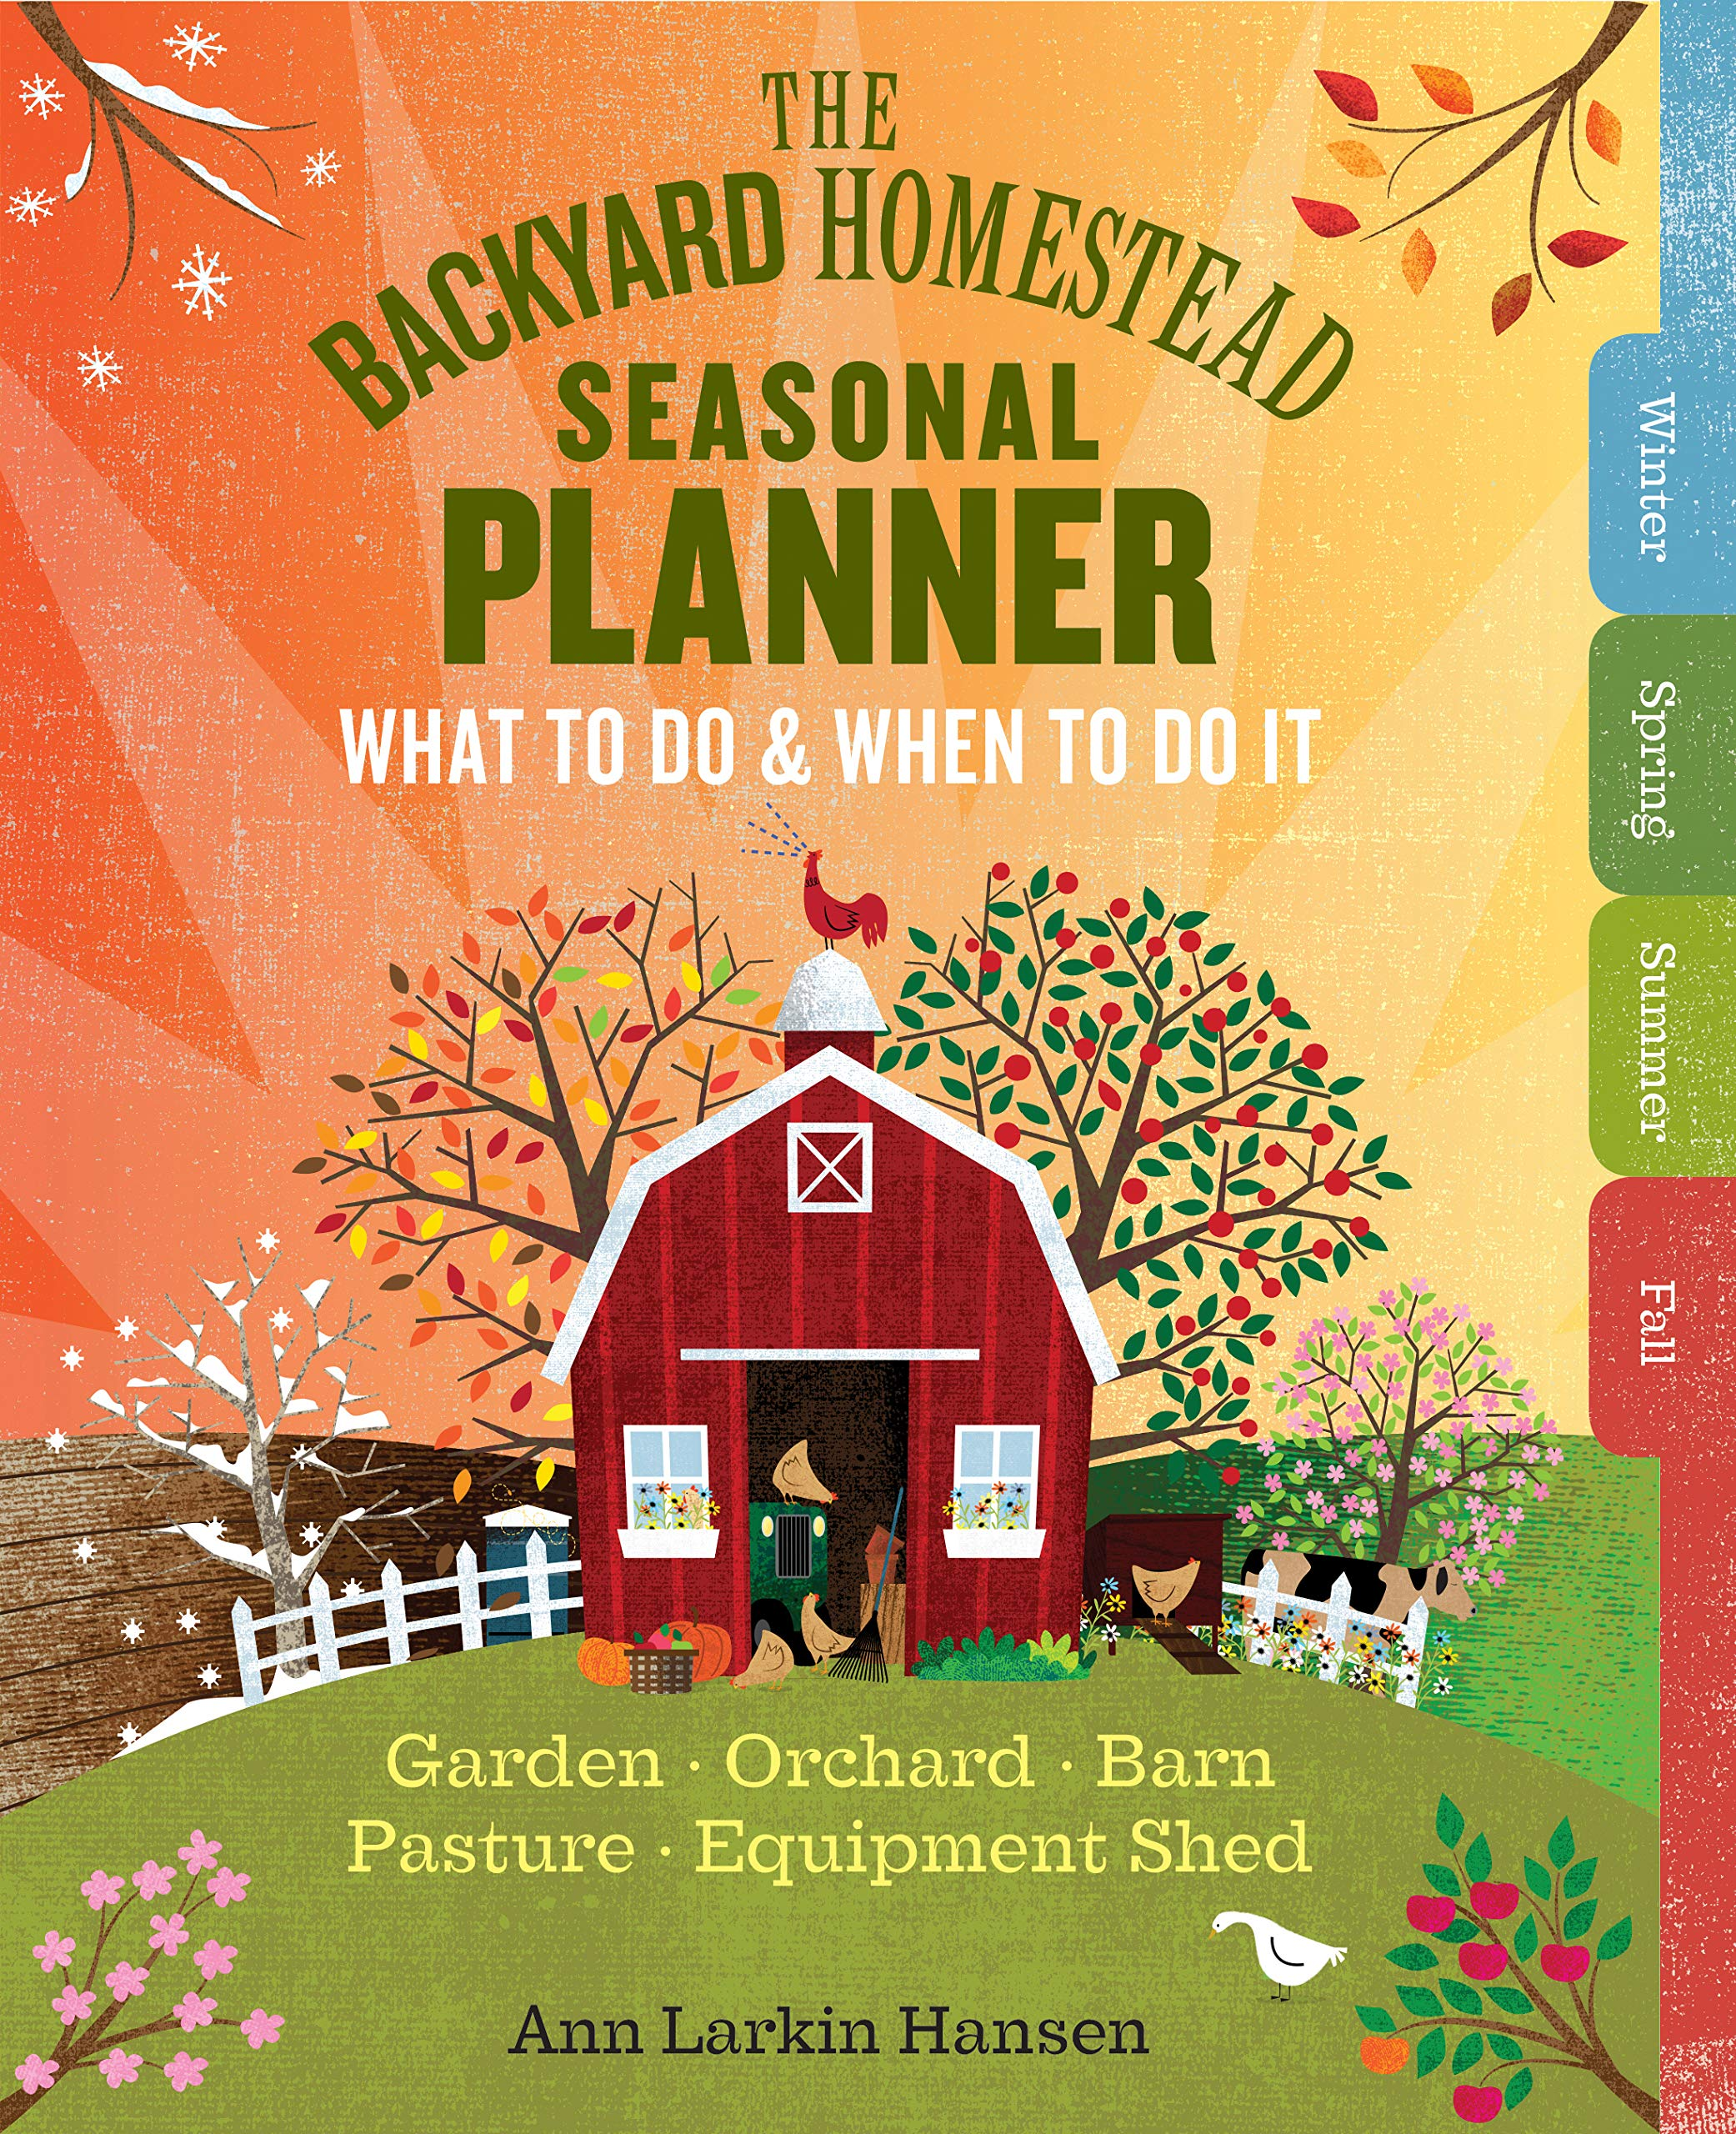 Download The Backyard Homestead Seasonal Planner: What to Do & When to Do It in the Garden, Orchard, Barn, Pasture & Equipment Shed PDF